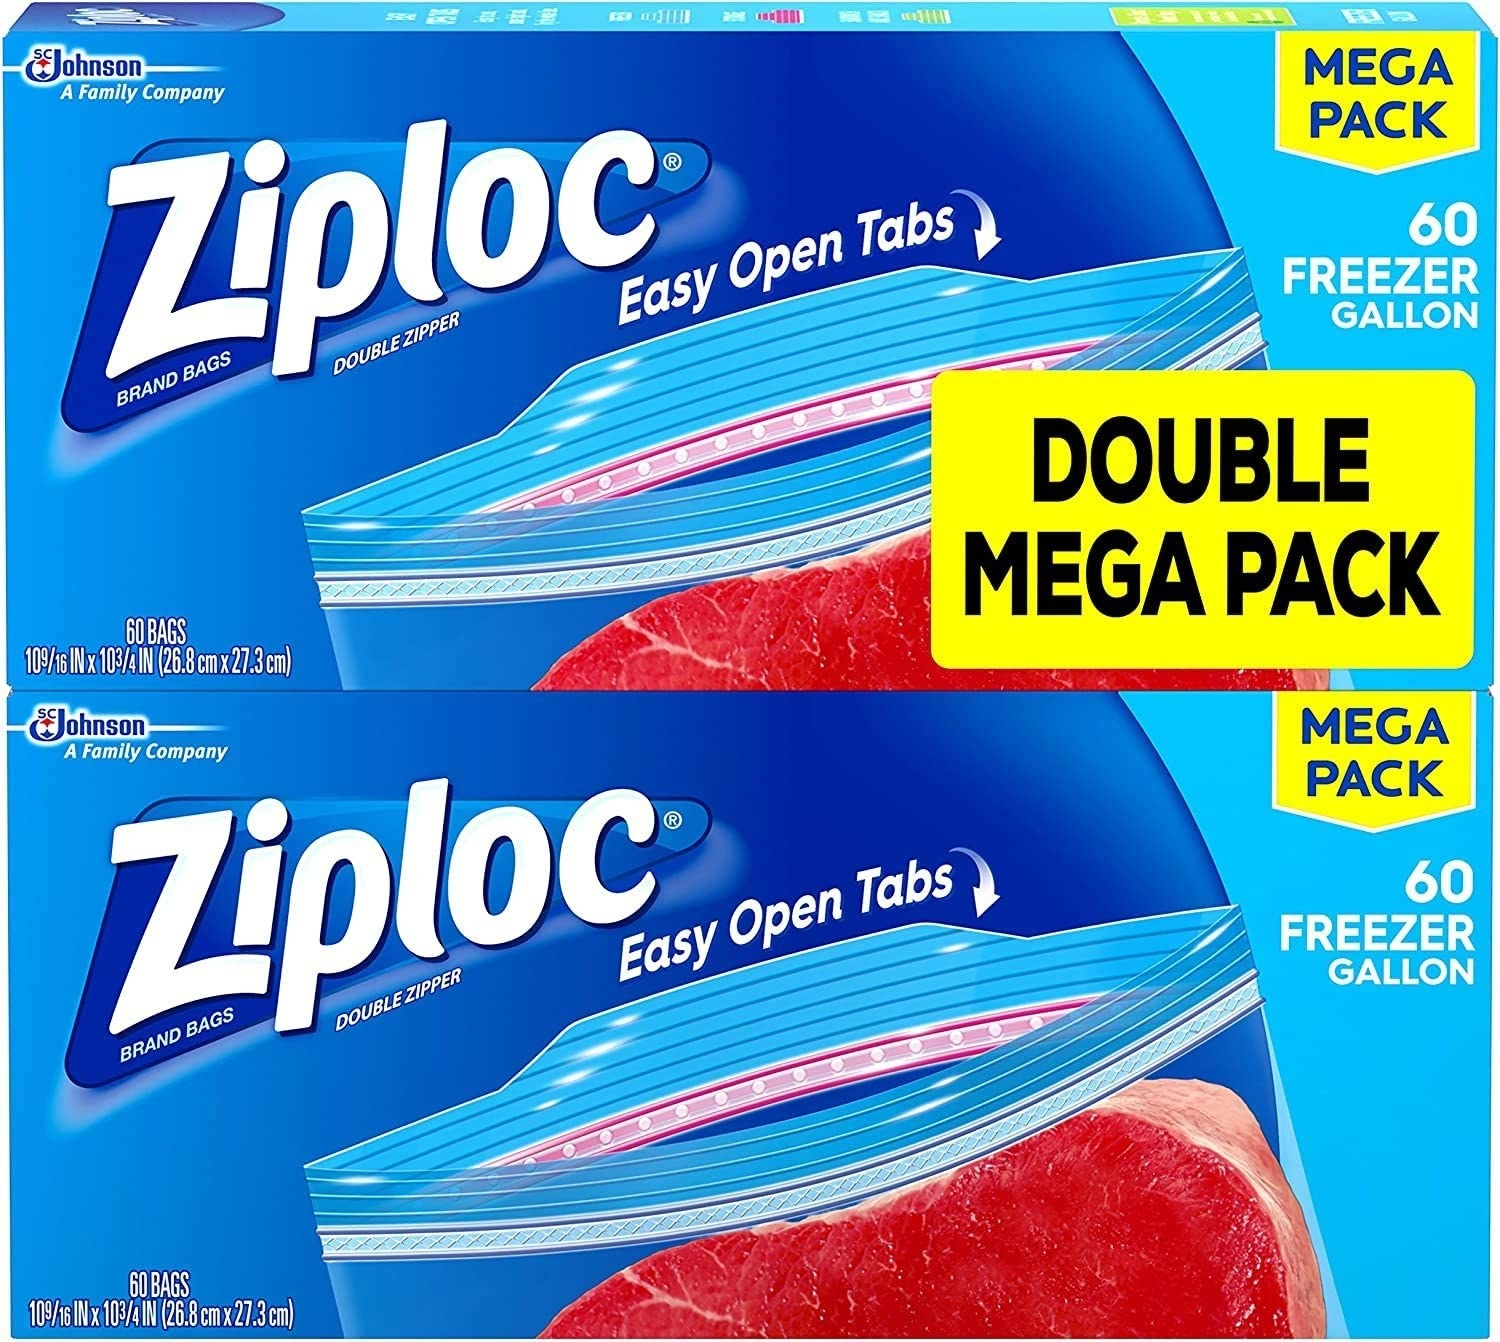 two boxes of ziploc freezer bags on top of each other